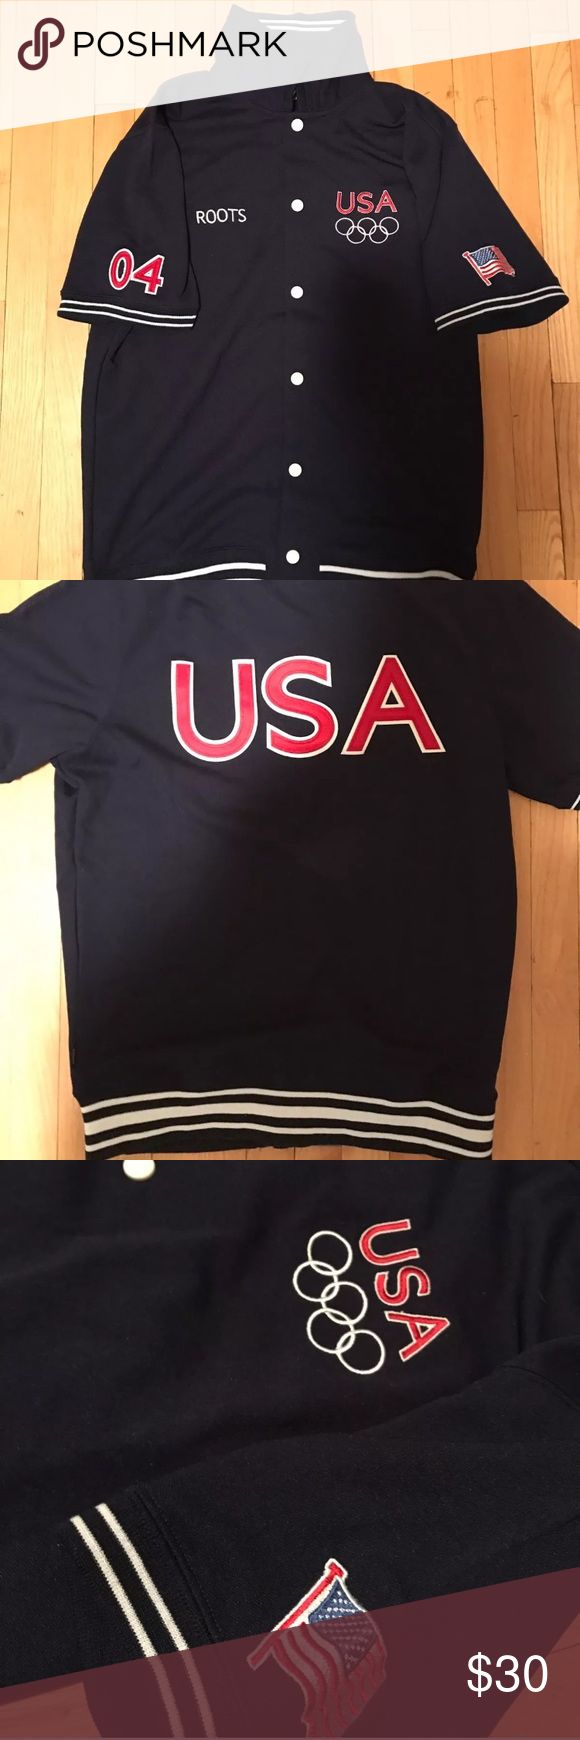 2004 Olympic Basketball Warm-up Jacket Roots USA USA participants men's warm up jacket from the XXVIII Summer Olympics held in Athens Greece, 2004. These jackets were given to athletes participating in the games.  medals, 6 of them Gold. Shirts